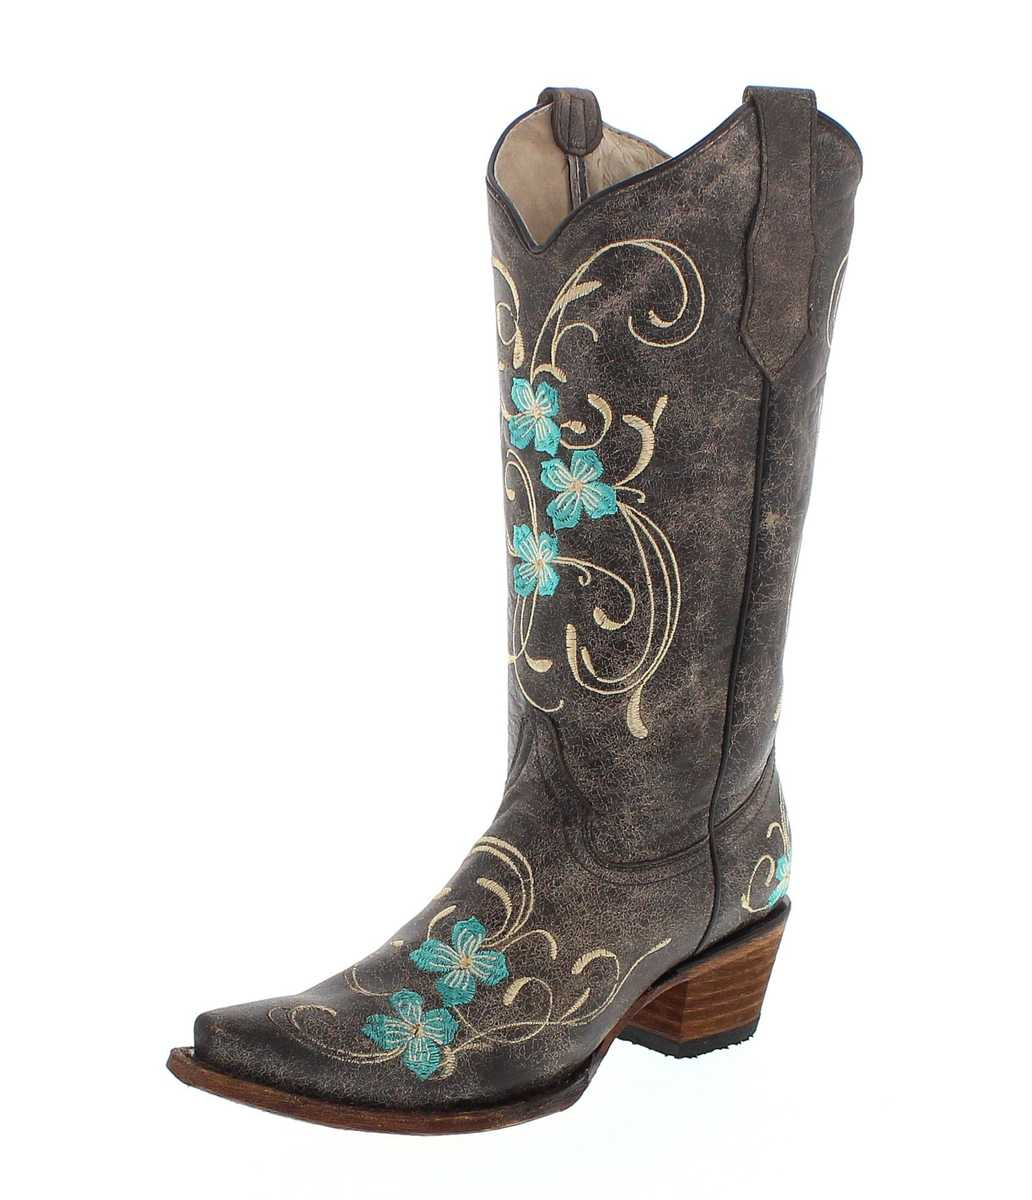 Circle G by Corral Boots L5255 LD Brown Turquoise Western boot - brown turquoise